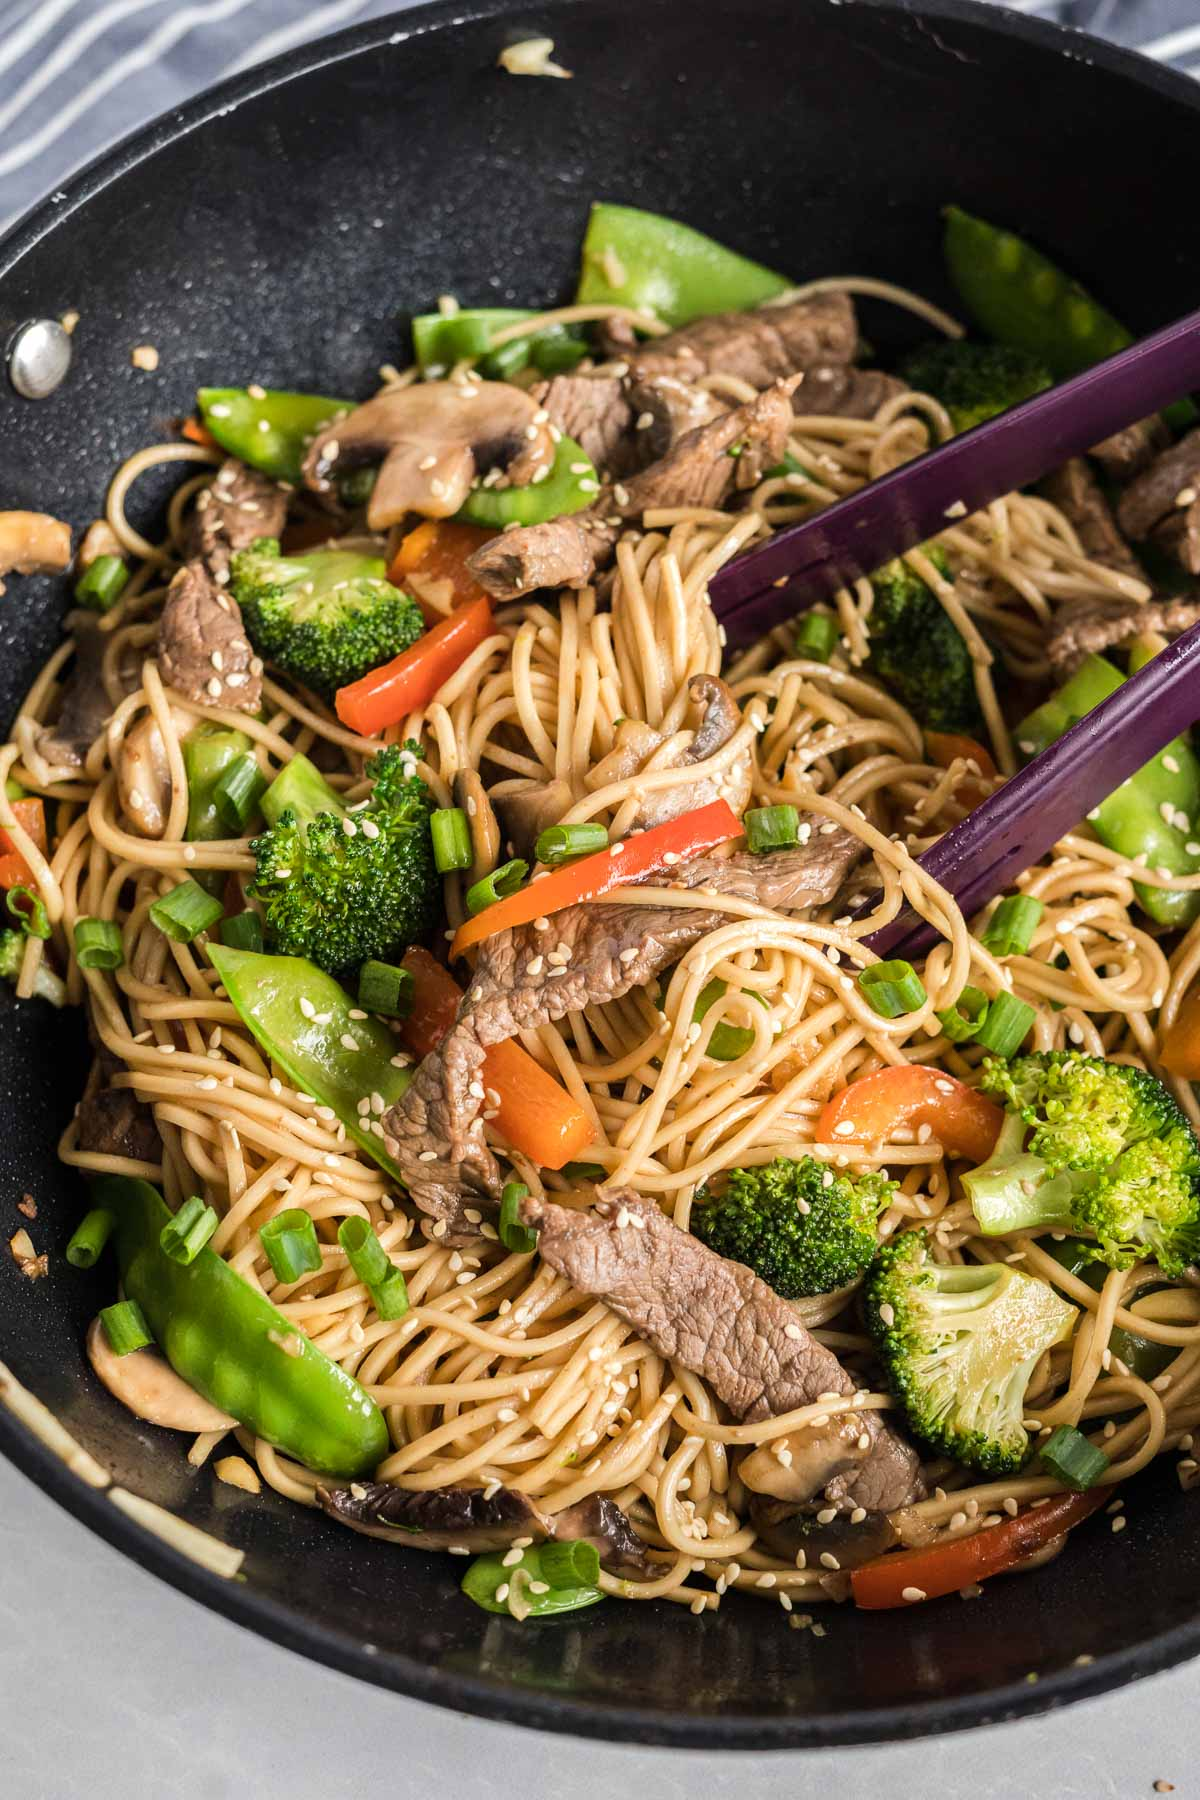 Beef, noodles and vegetables cooked in a wok with a pair of tongs for serving.